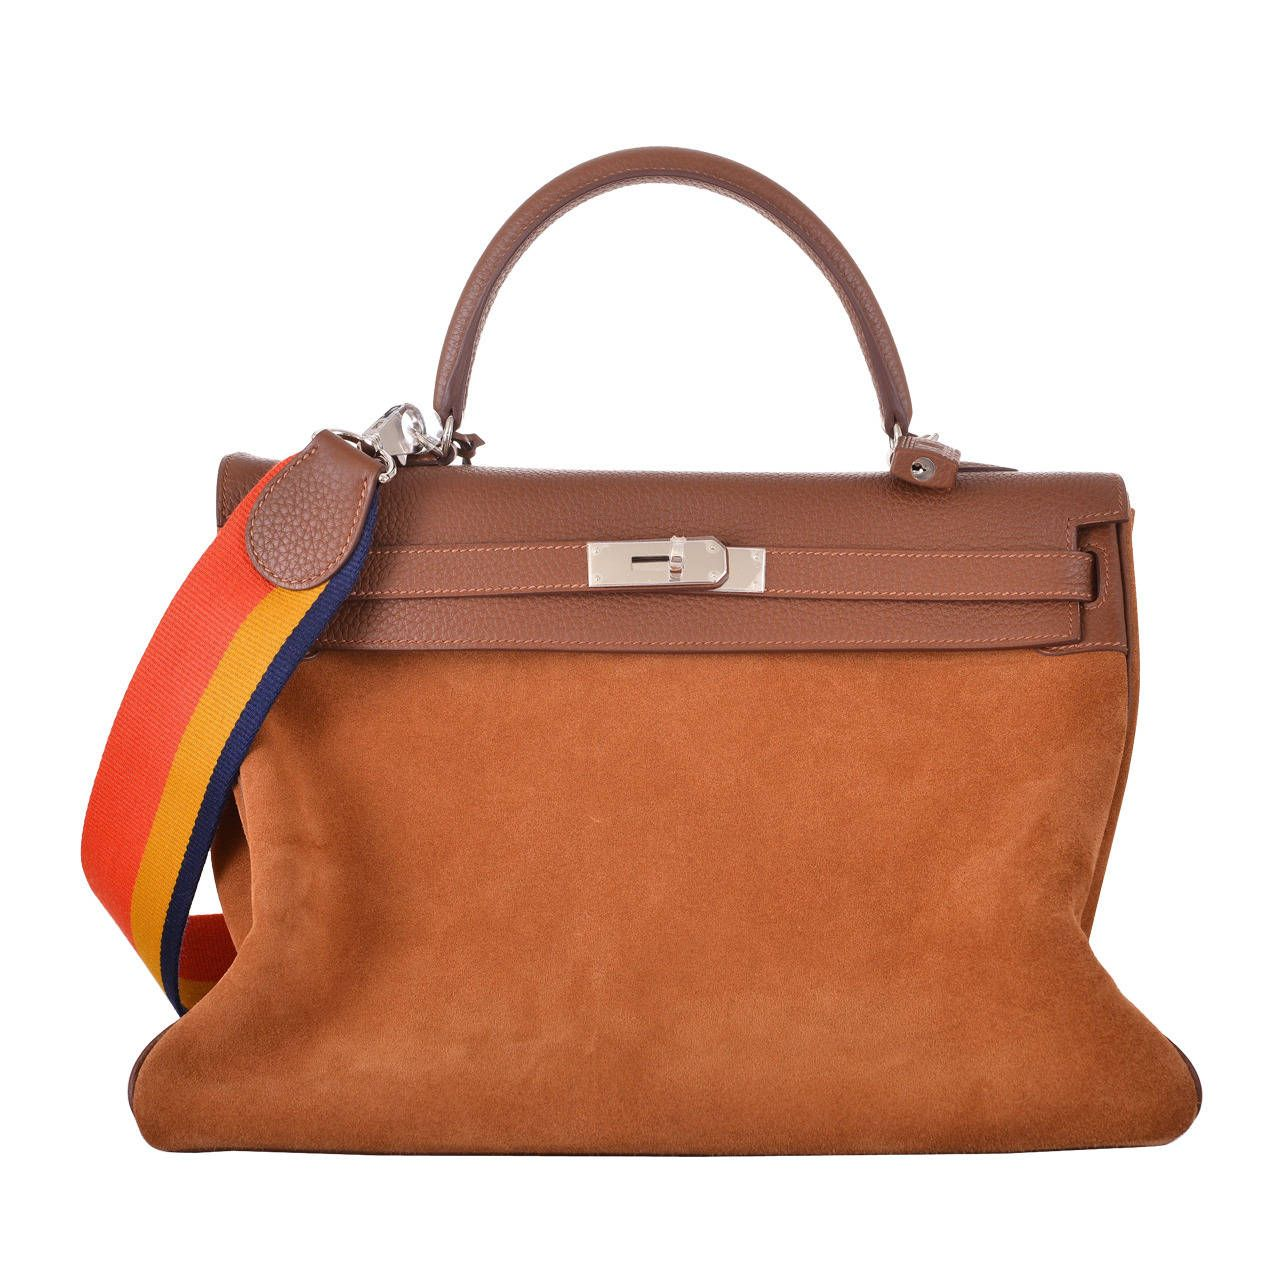 HERMES KELLY BAG 35CM LIMITED EDITION GRIZZLY SUEDE WITH RAINBOW STRAP  JaneFinds  4d06a1d1da563